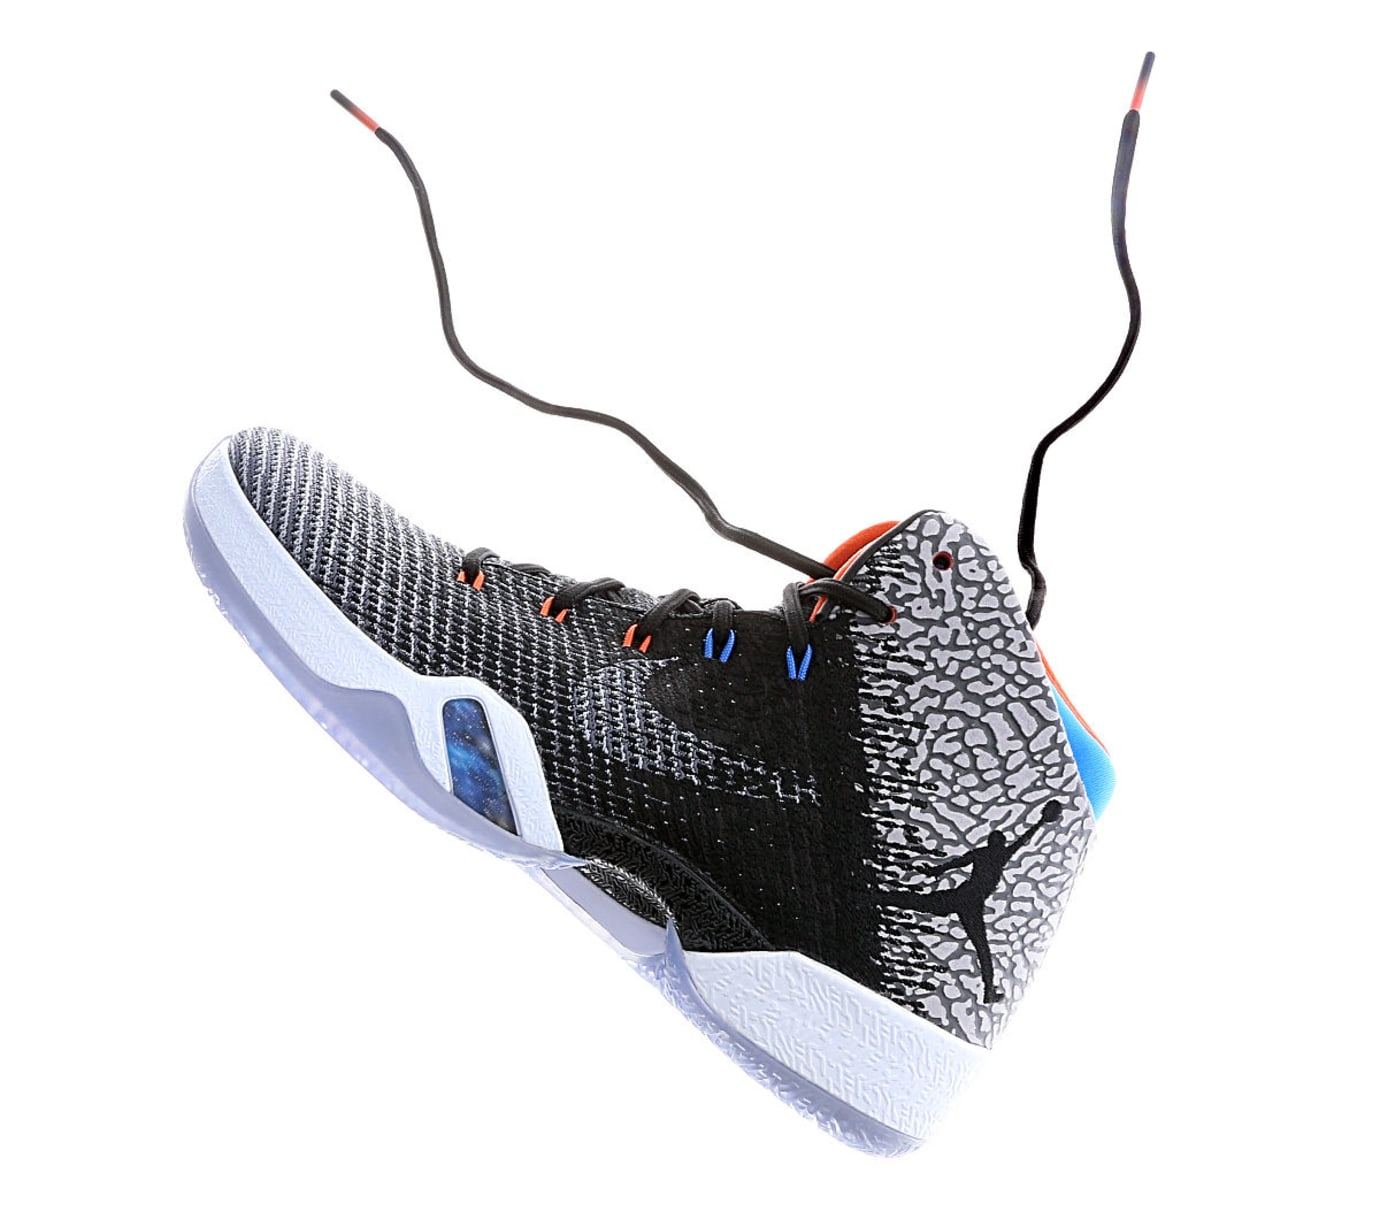 Russell Westbrook Air Jordan 31 Why Not? PE Restock Beauty AA9794-003